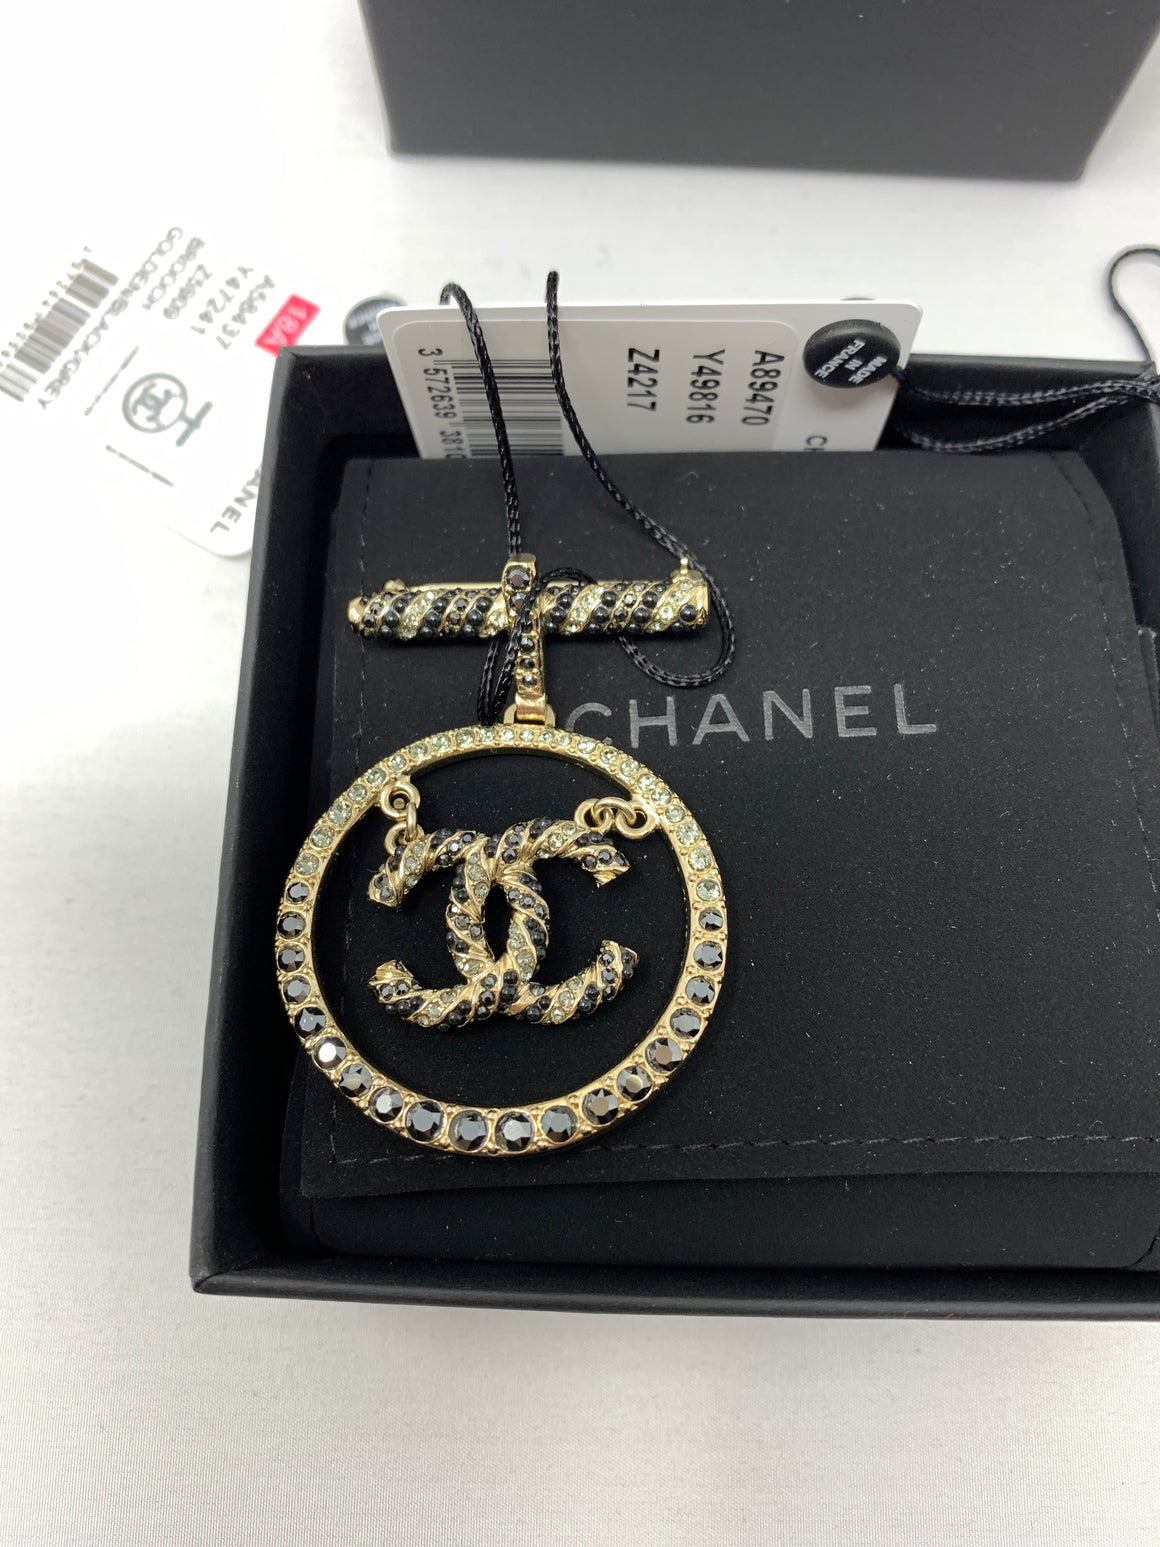 Chanel Strass Anchor Marine CC Brooch! - New York Authentic Designer - Chanel